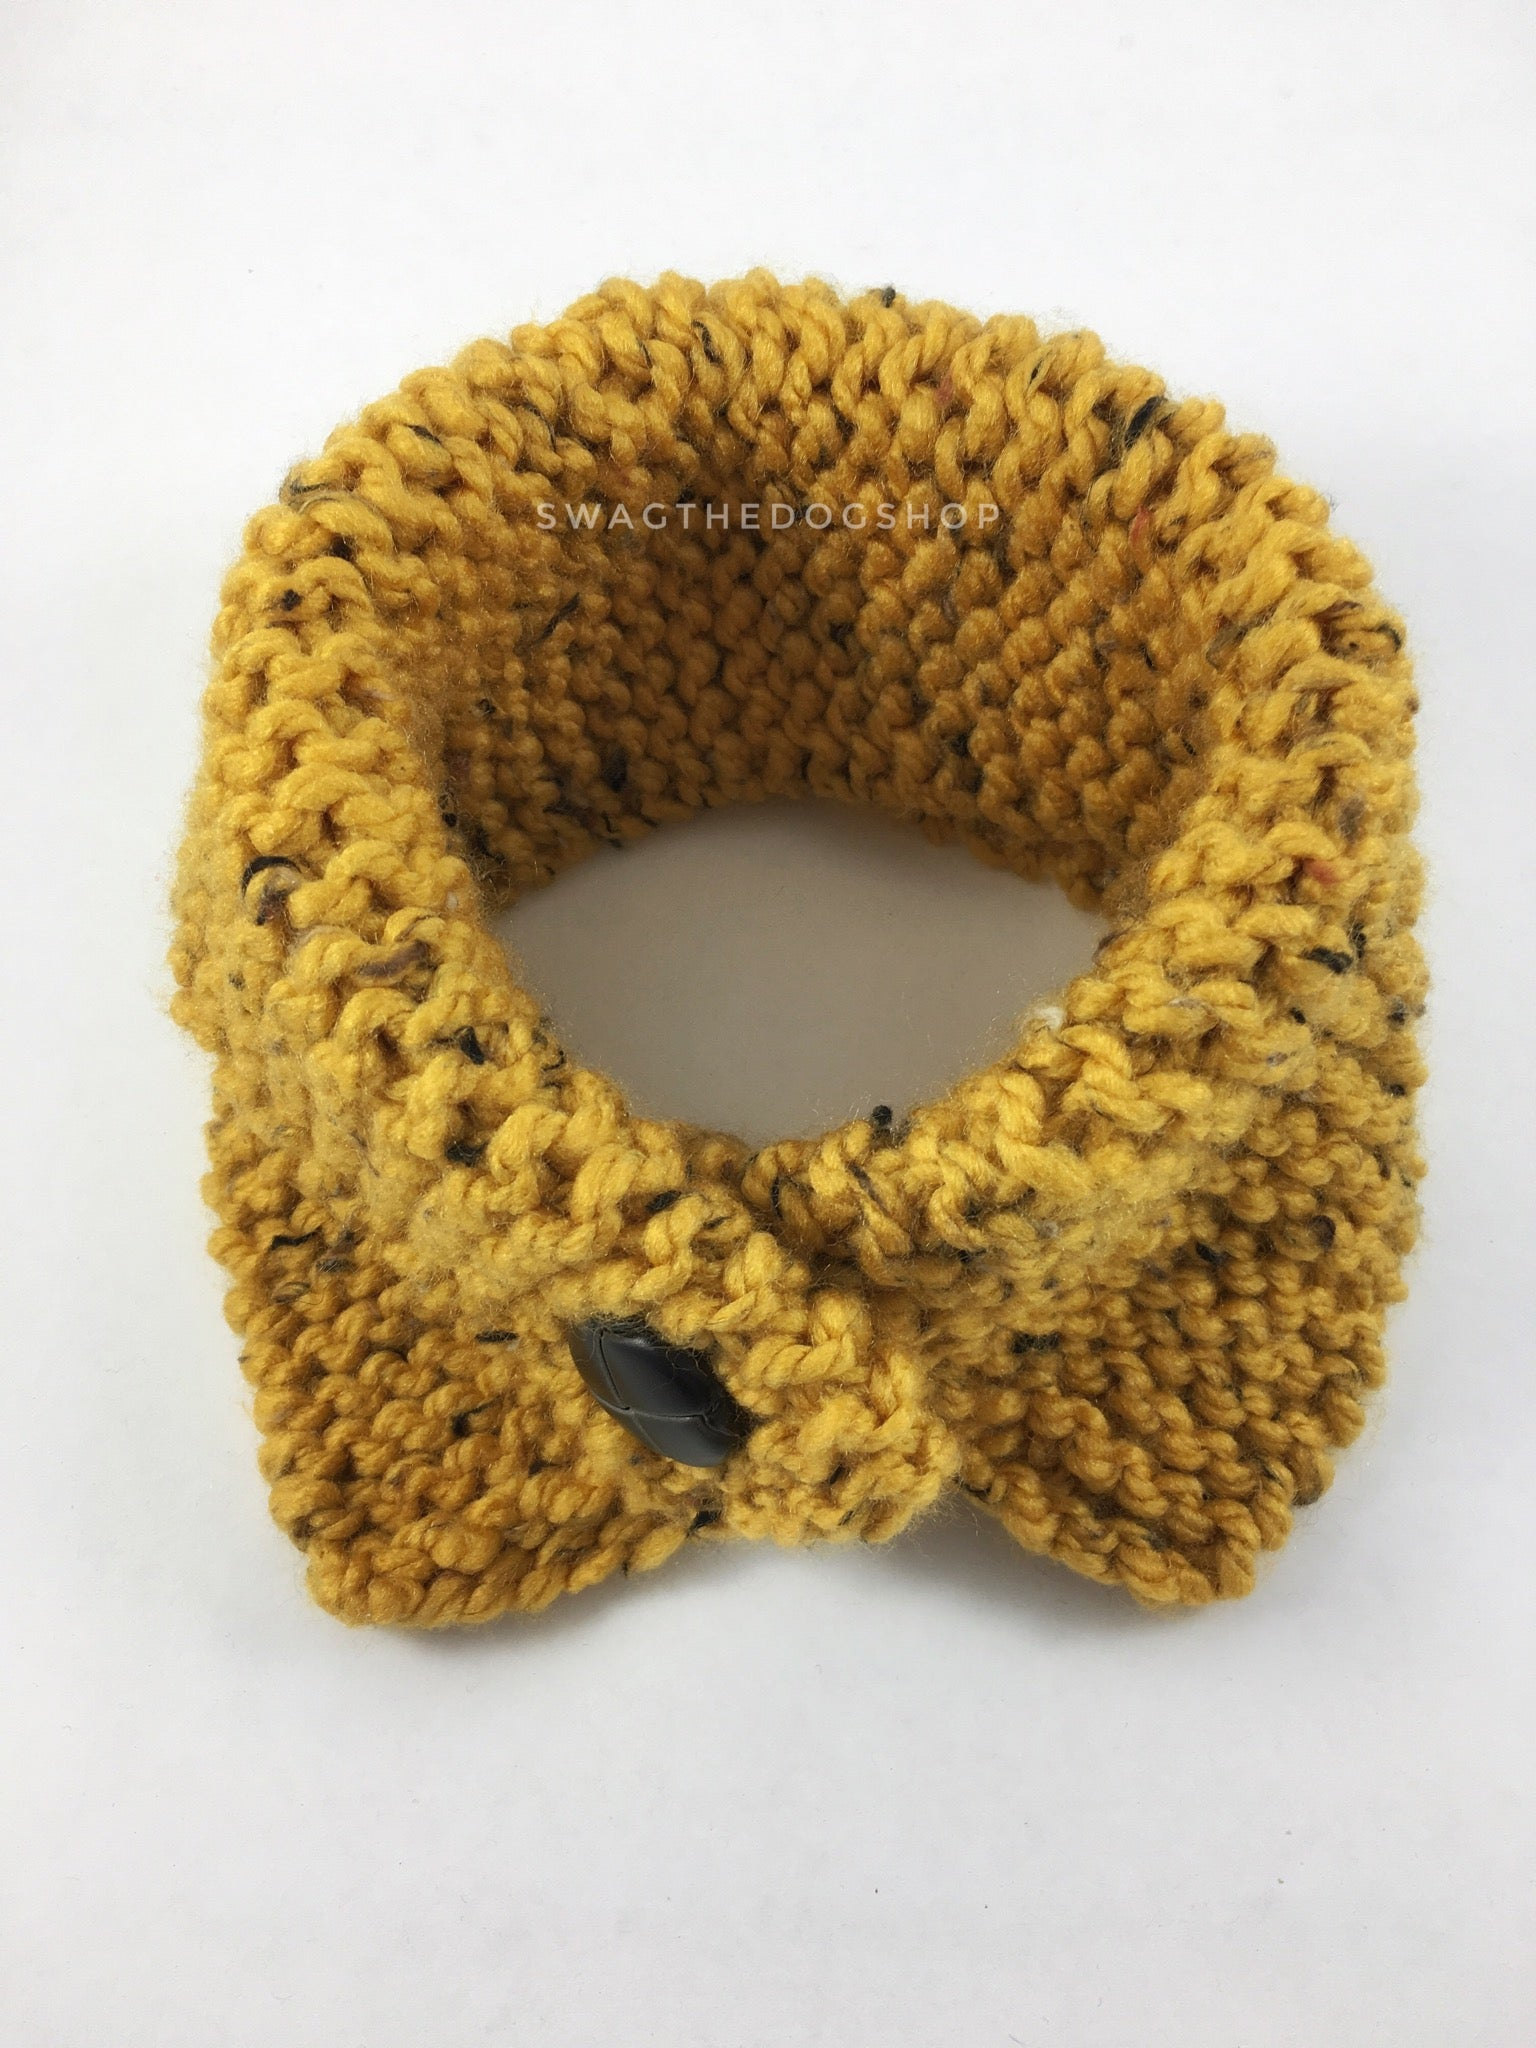 Honey Mustard Tweed Swagsnood - Product Above View. Honey Mustard Color with Black Speck Tweed Dog Snood with Accent Button